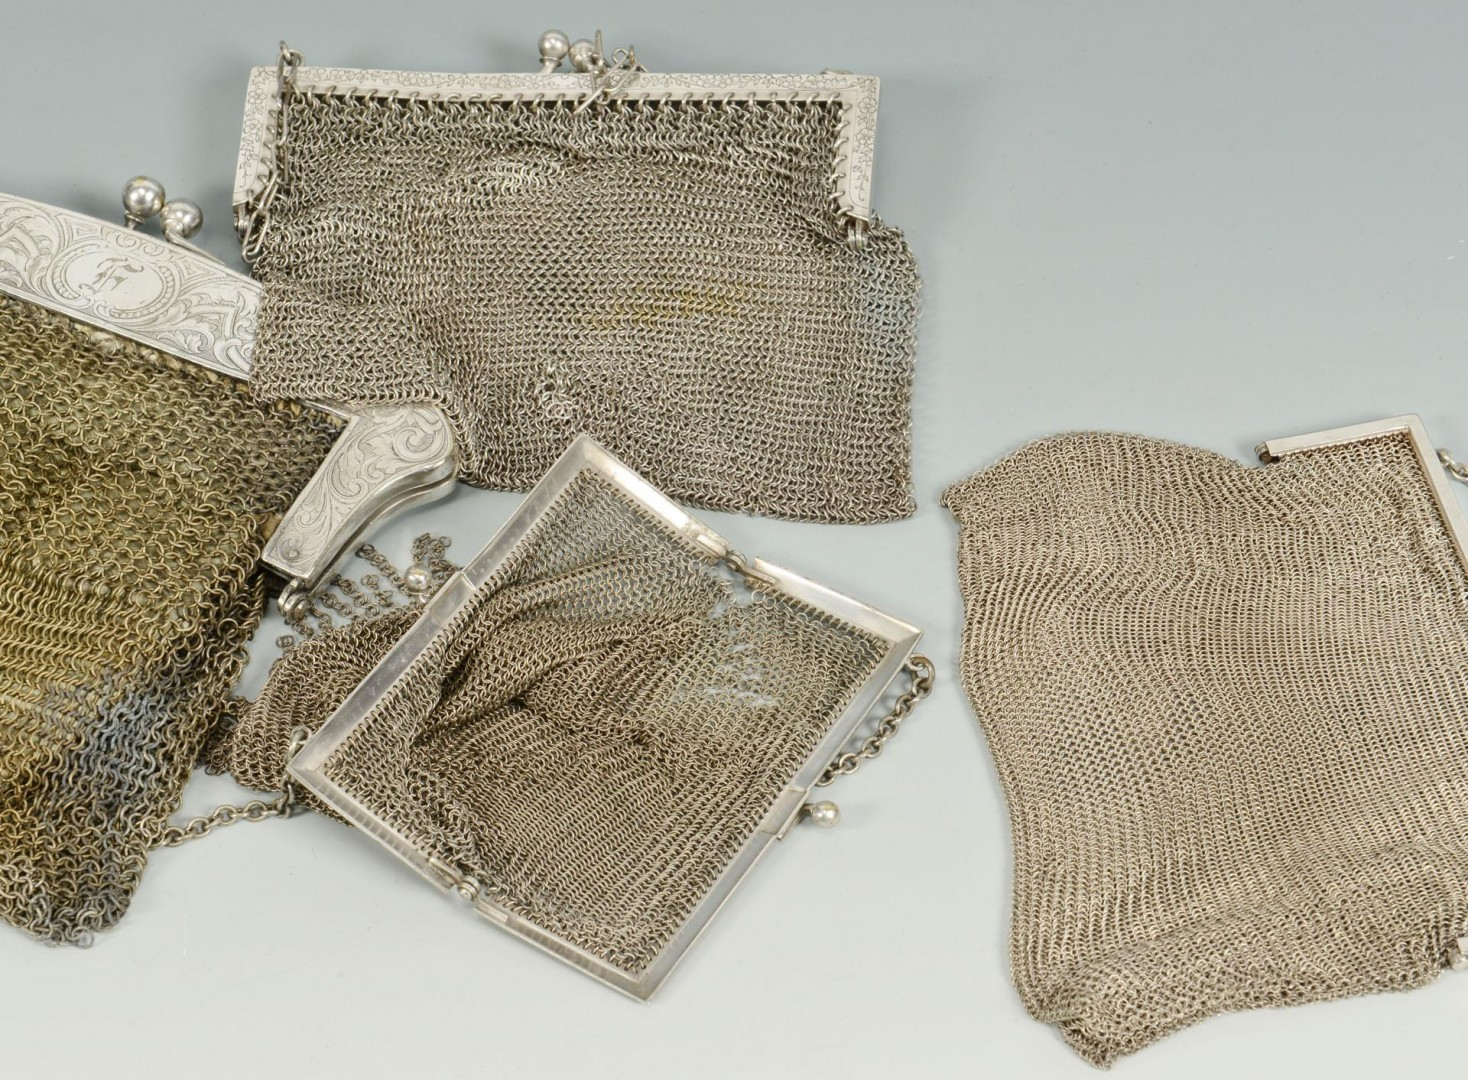 Lot 709: Group of 7 Ladies Mesh Bags, 3 Silver type